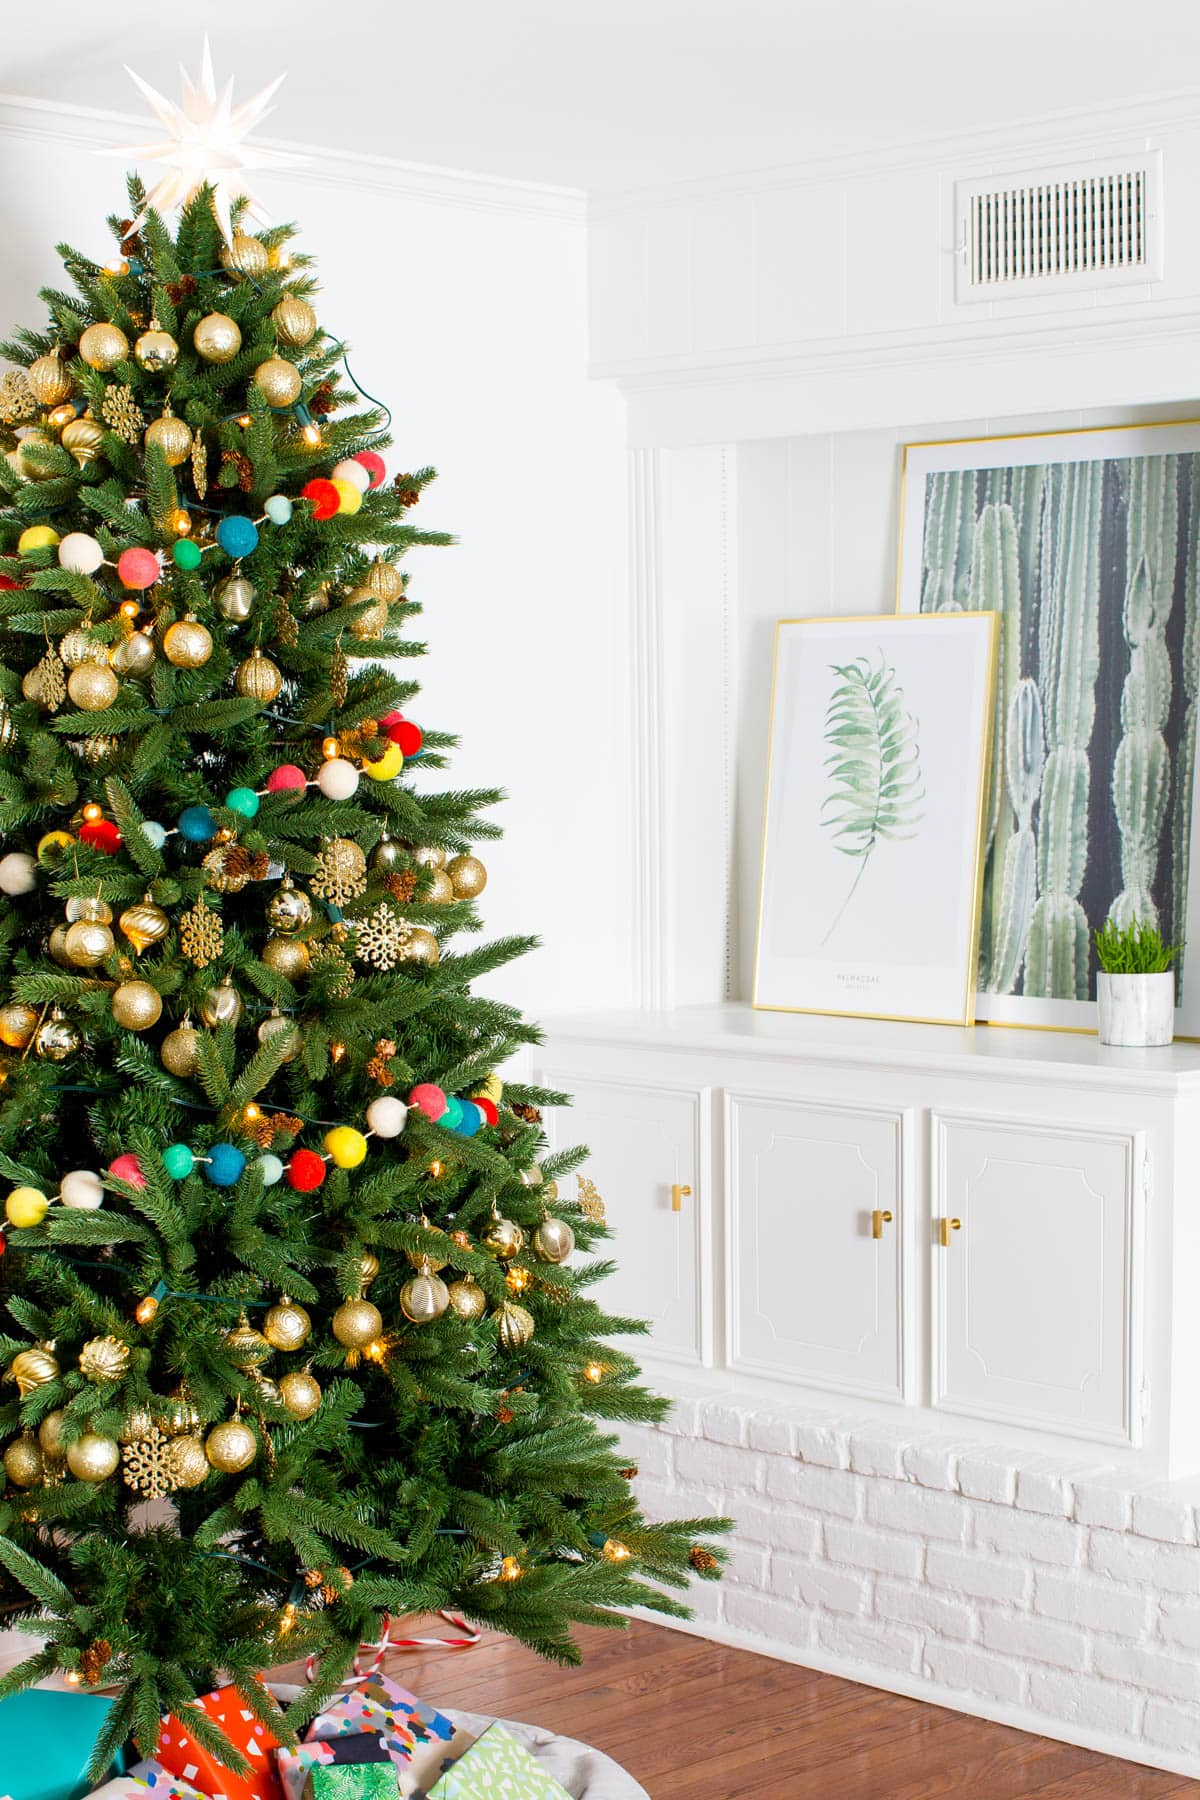 the holiday living room makeover we gifted with lowes by lifestyle blogger ashley rose of - Lowes Christmas Ornaments